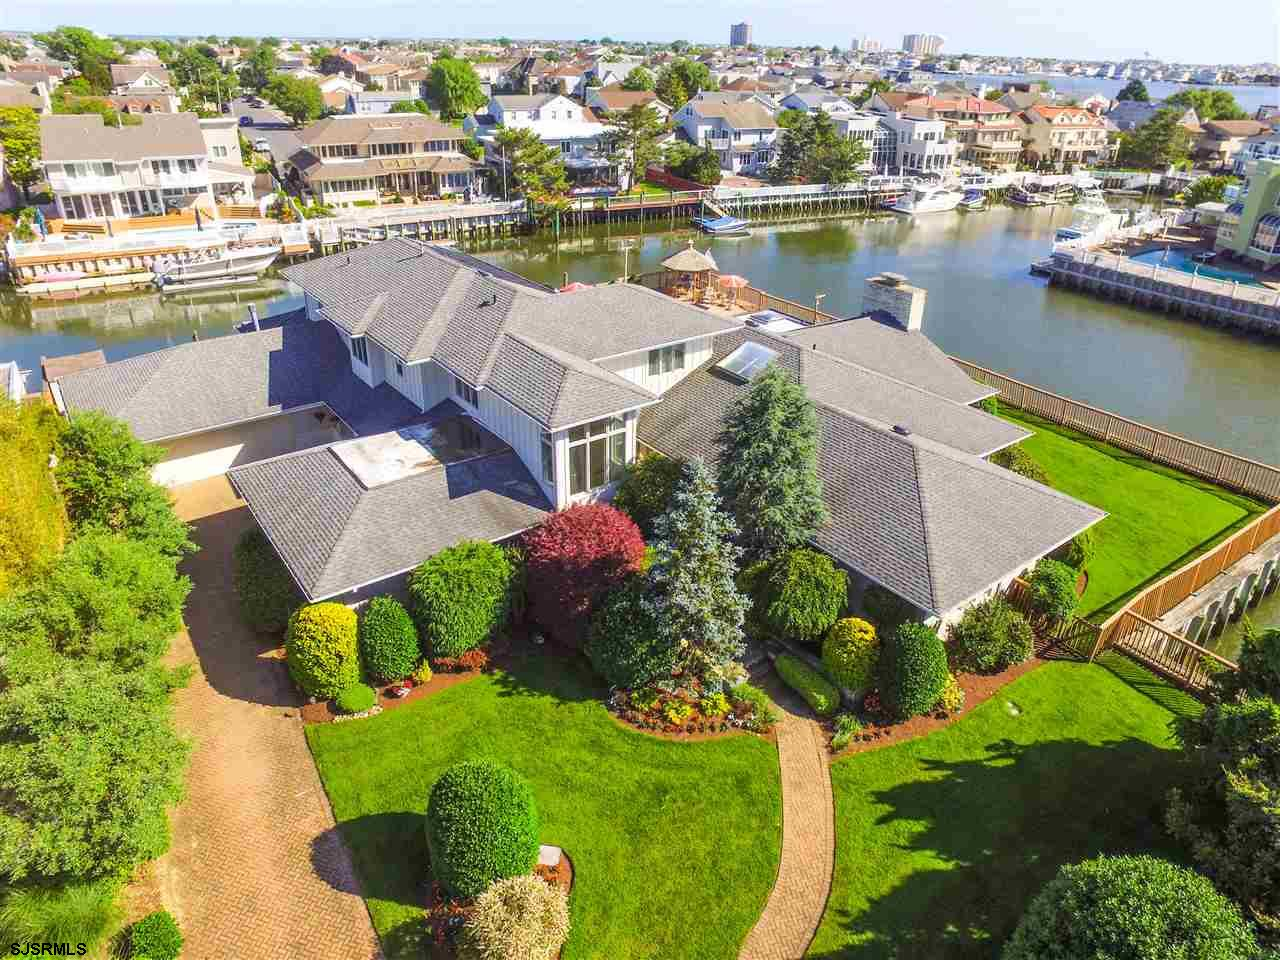 The Crown Jewel of Bayshore Drive with its premier waterfront location at the very end of this private cul-de-sac! Experience the enchanting water views from one of the most exclusive addresses along the water in all of Margate! You'll love the magnificent outdoor living with expansive terrace, in-ground pool, hot tub, gazebo and easy access to the two docks with multiple boatslips. Inside this sprawling 6,700 sf luxury bayfront home, no expense was spared when Regina Builders recently renovated it and added onto it. The 2-story home boasts an extended great room with separate sitting room and sun room with teak ceilings, dining area and gourmet kitchen with beveled-edge granite countertops, center island and double ovens, features 4 master bedroom suites along separate wings of the home for added privacy and hard-to-find space for the entire family to spread out, along with 3 more additional bedrooms for a total of 7 bedrooms throughout. The home also offers an attached 2-car garage and additional parking in the driveway. This special waterfront residence has incredible WATER views everywhere you turn!